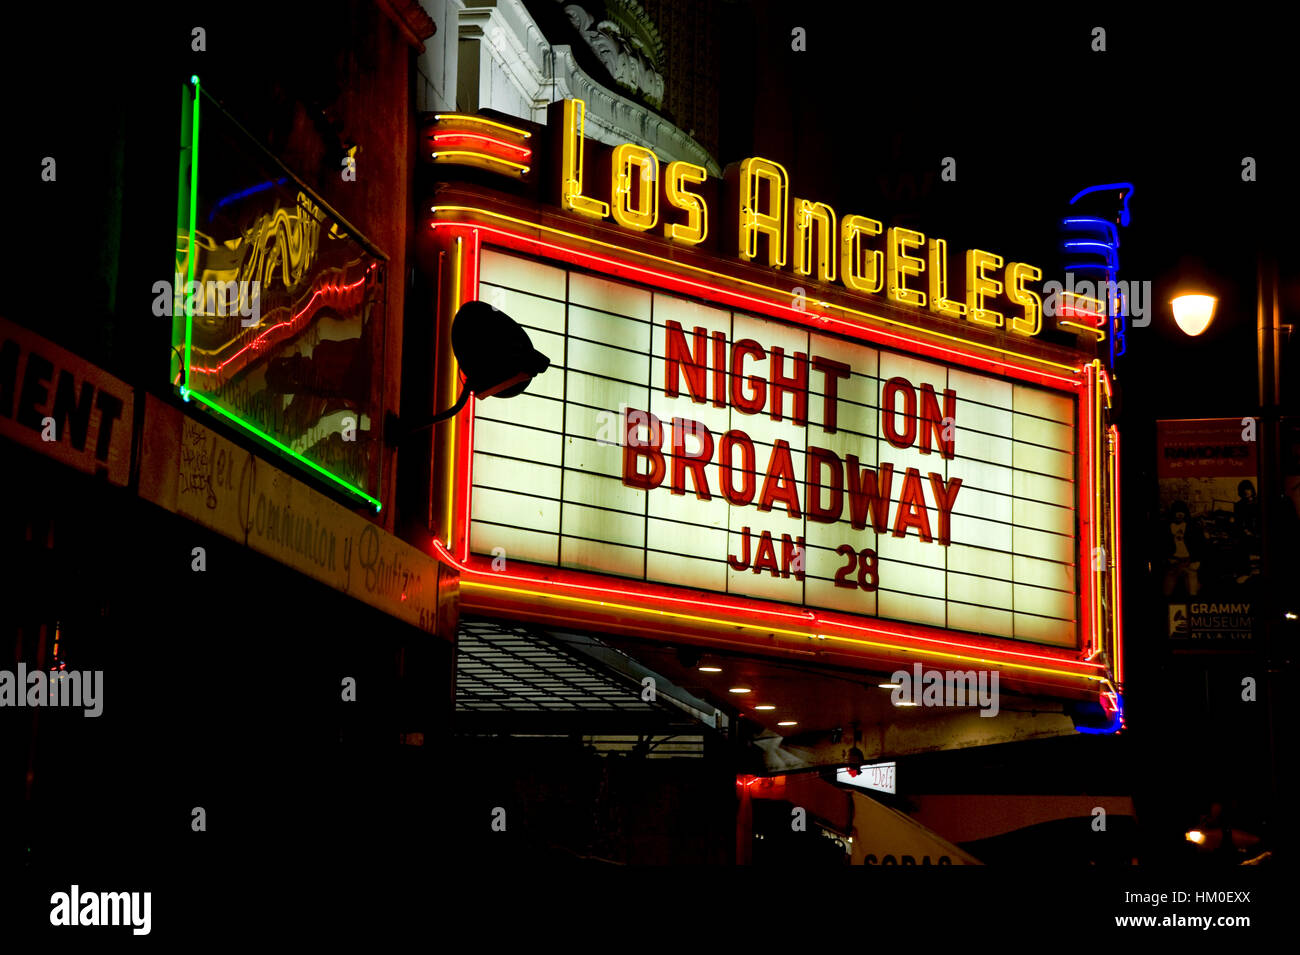 Neon sign marquee for the Los Angeles Theater on Broadway in downtown Los Angeles - Stock Image